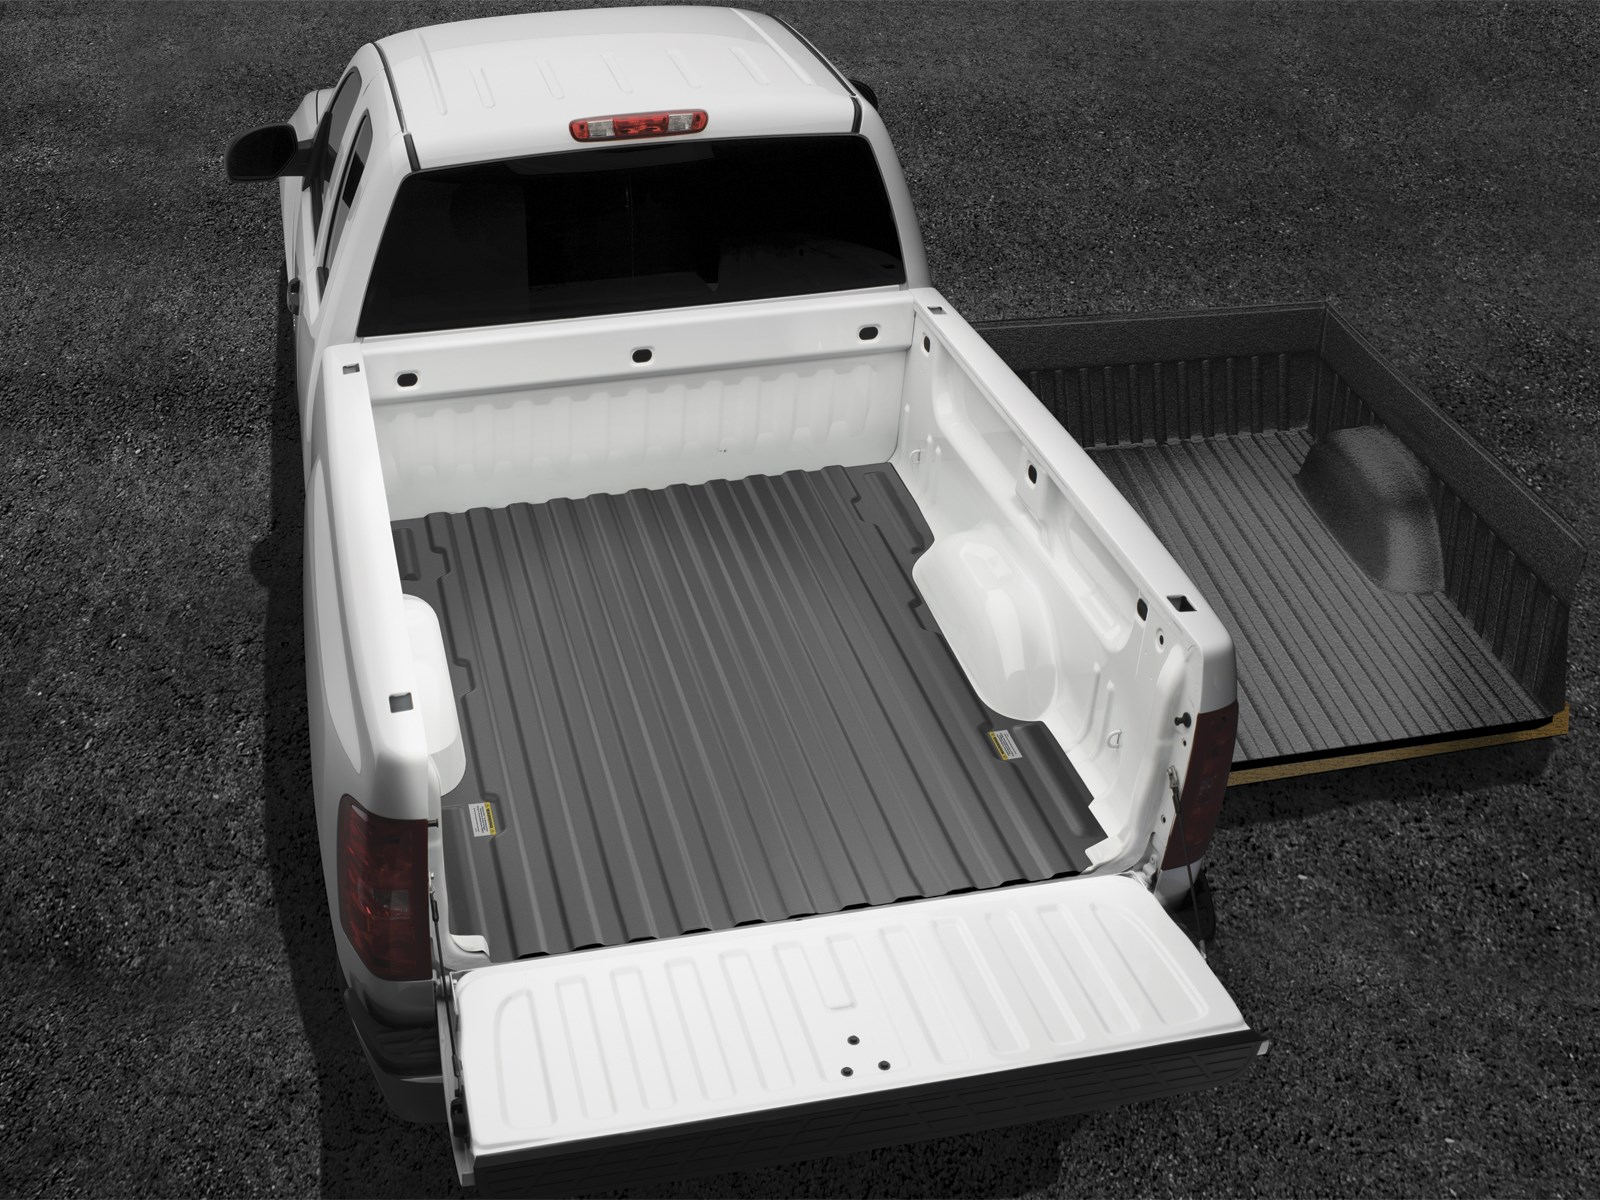 Weathertech mats toyota tacoma - 2016 Toyota Tundra Underliner Bed Liner For Truck Drop In Bedliners Weathertech Com